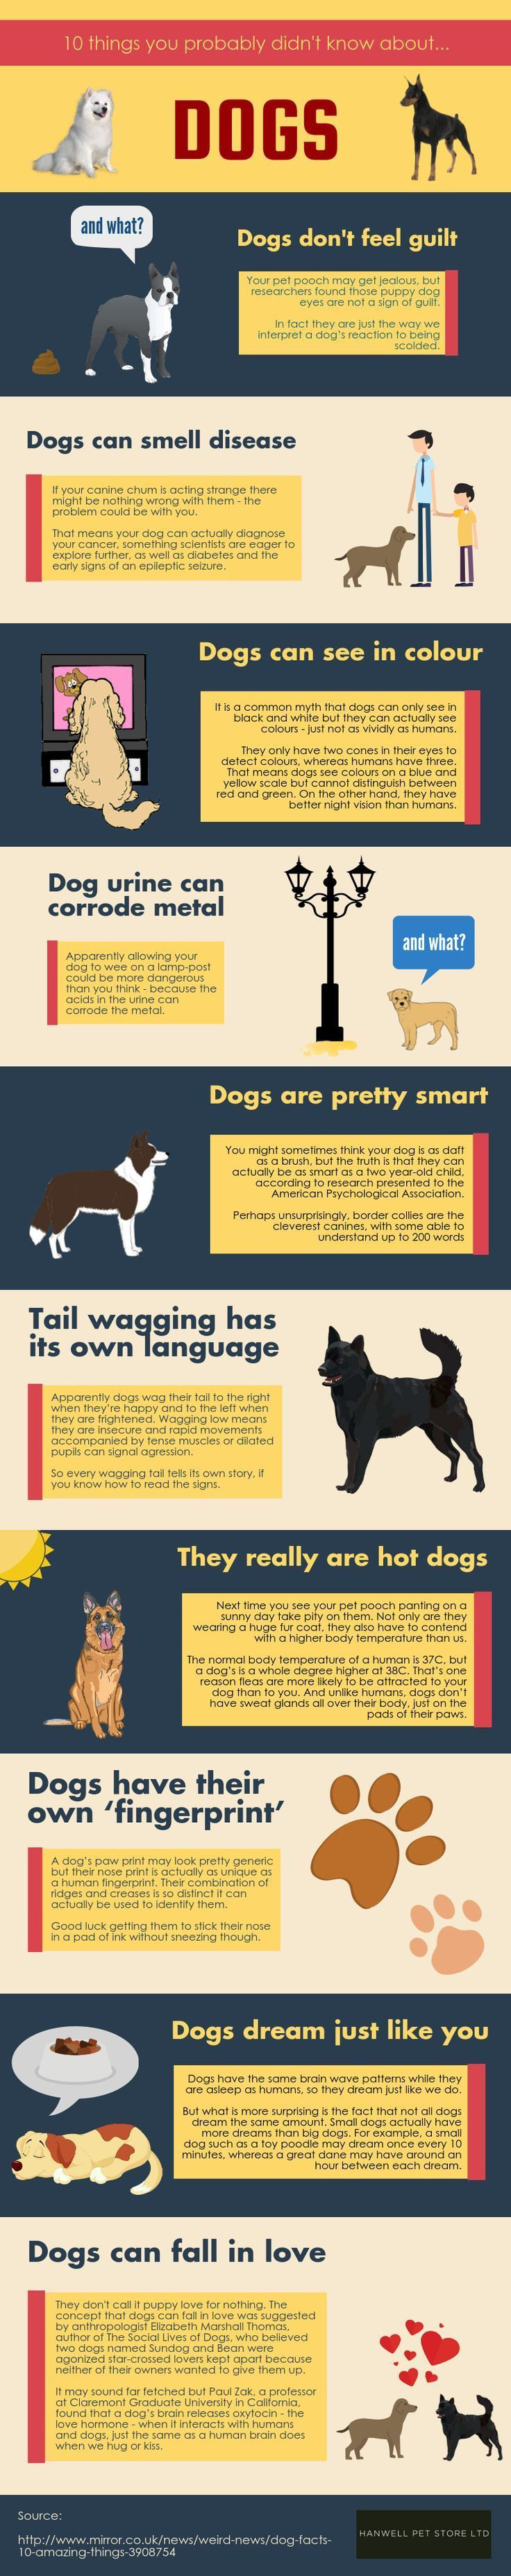 10 Things You Didn't Know About Dogs | pug facts | pug behavior